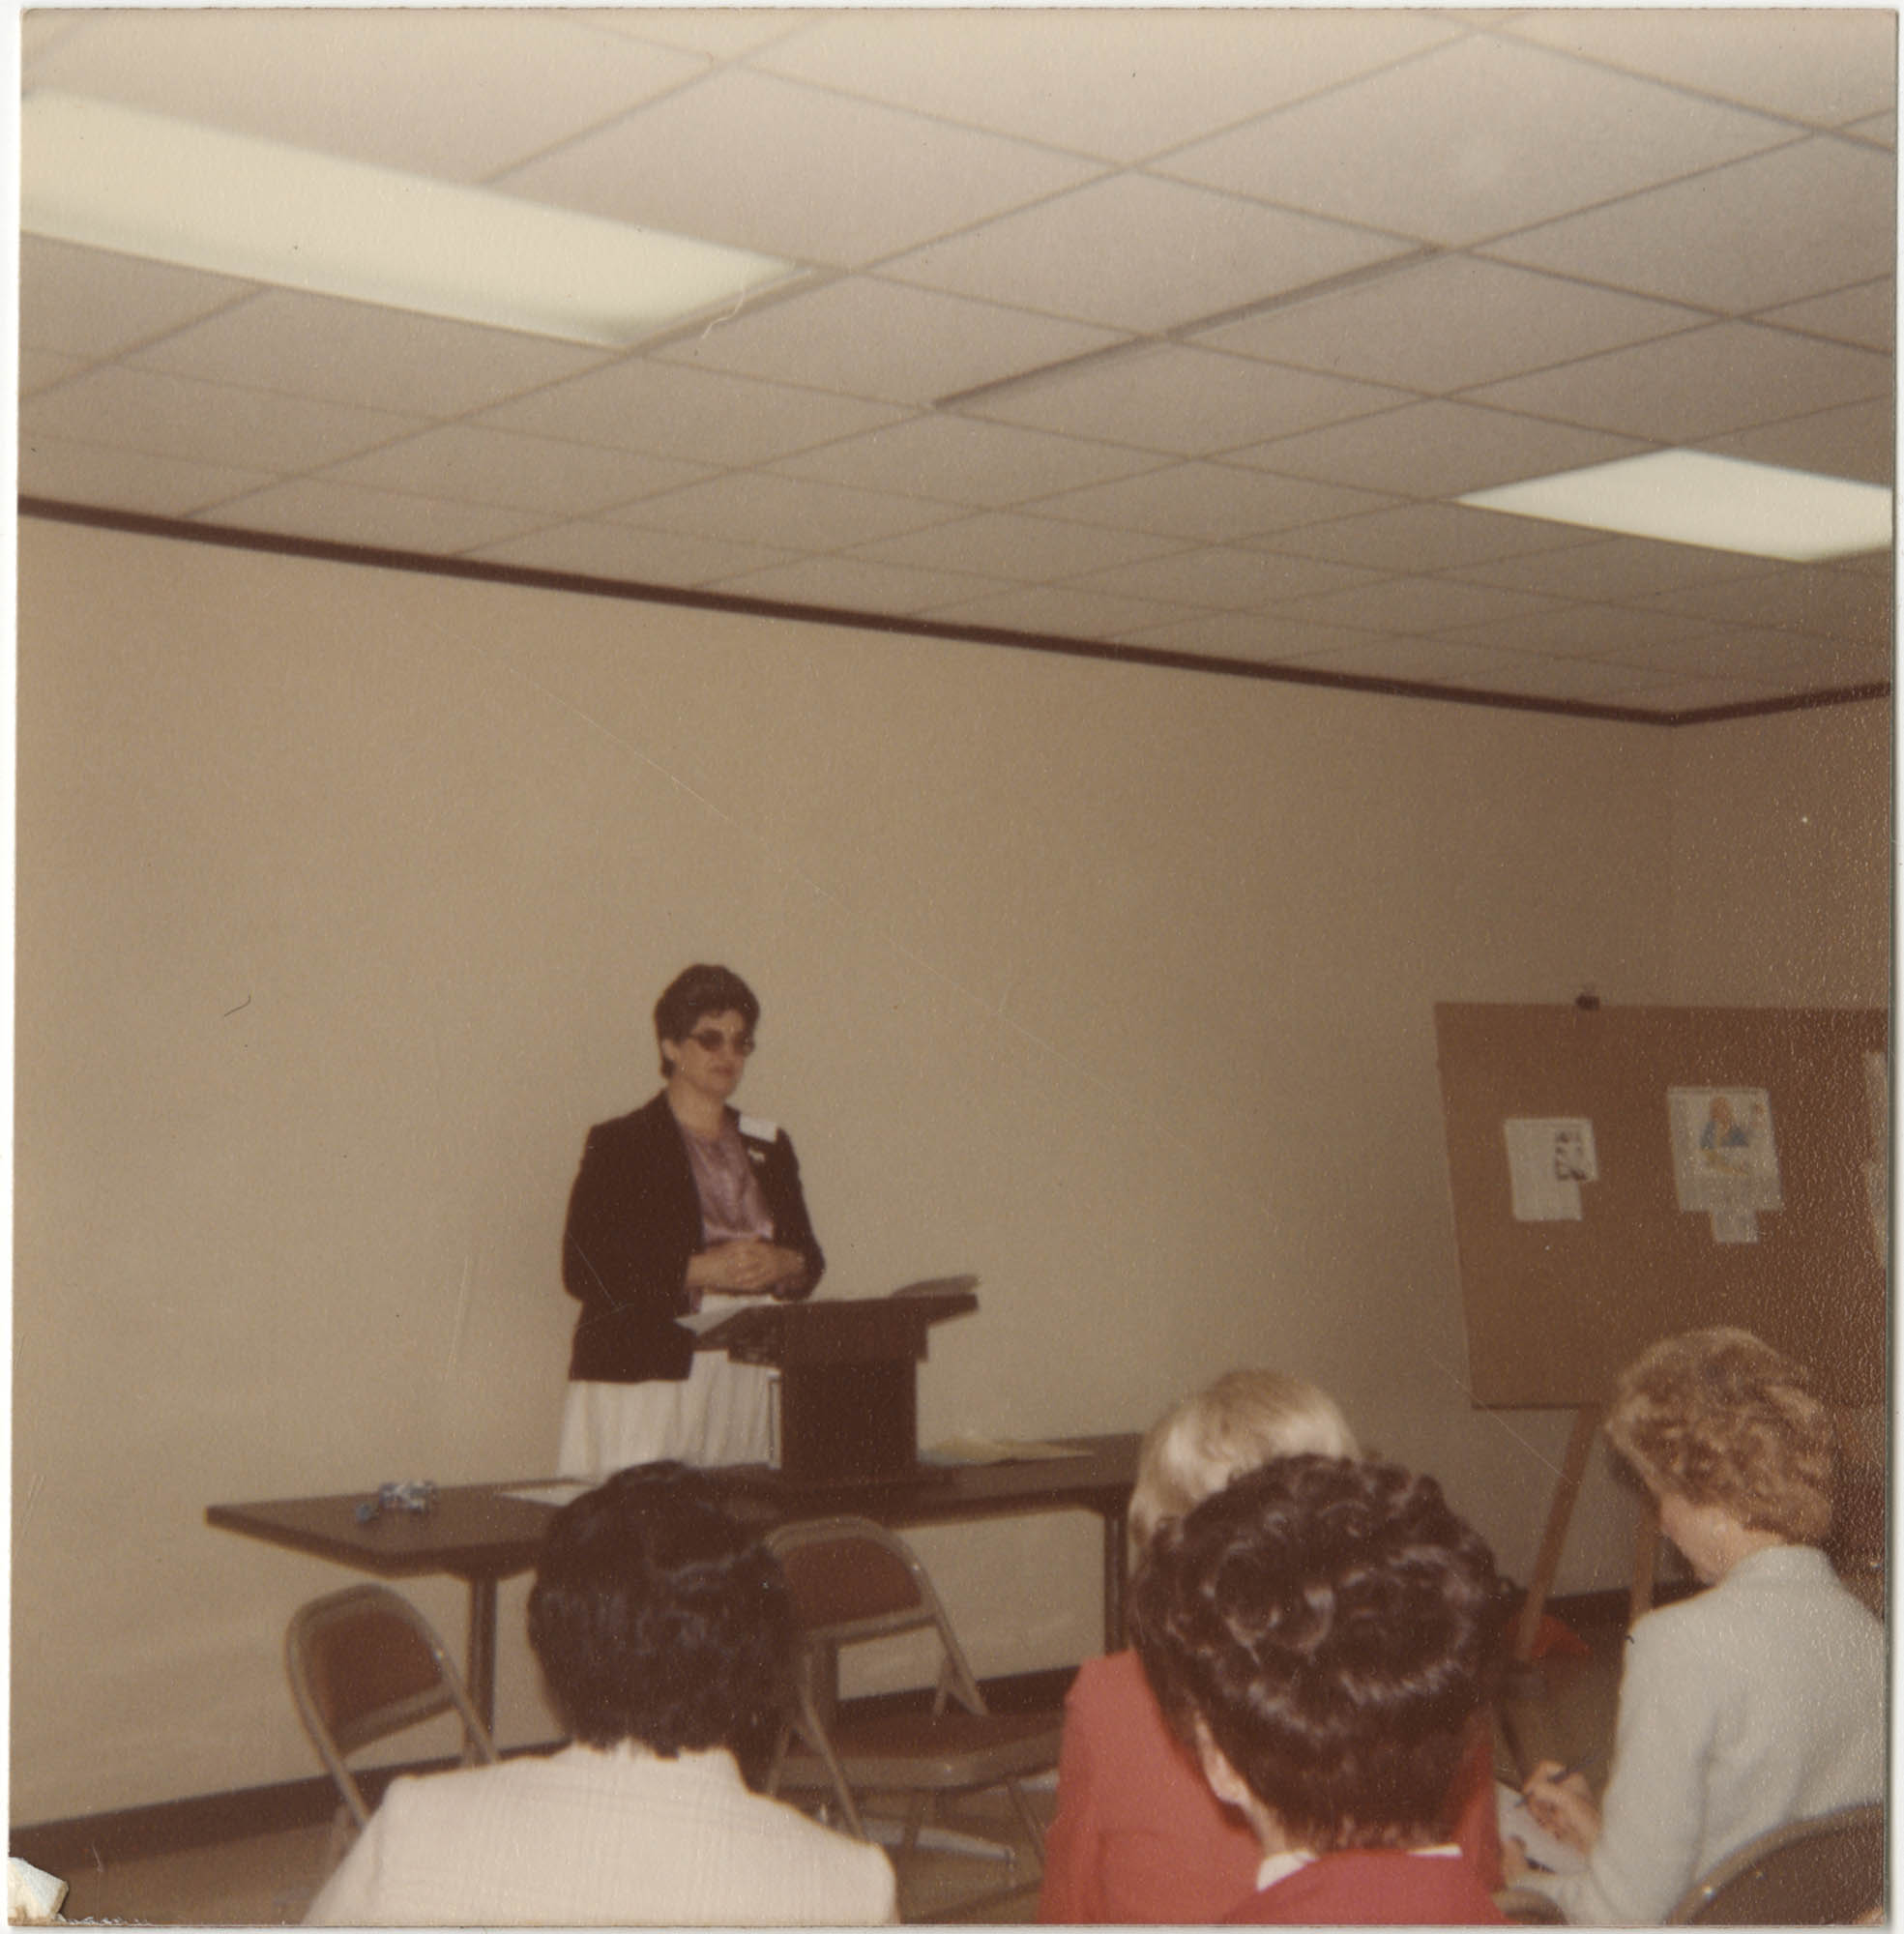 Photograph of a Women Speaking in Front of a Group